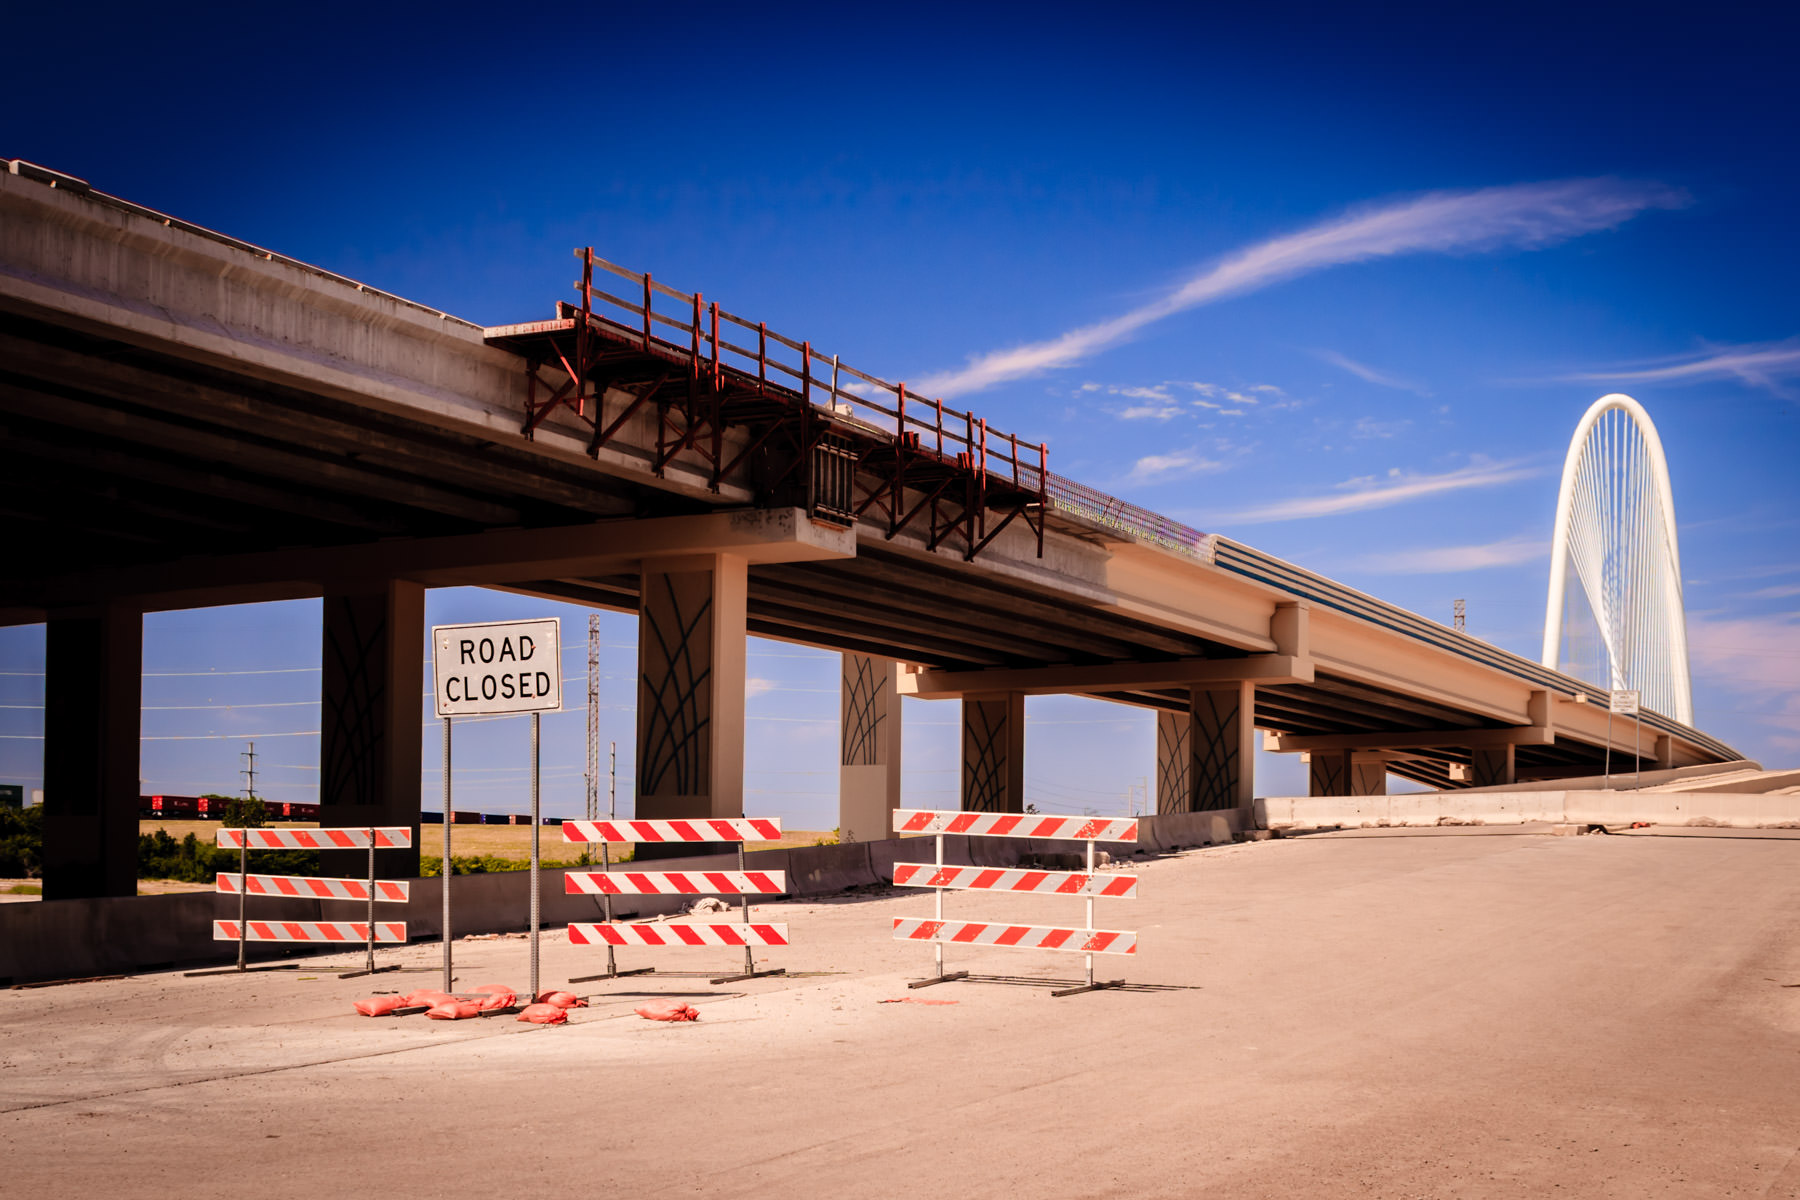 Construction on the approaches to the Santiago Calatrava-designed Margaret Hunt Hill Bridge in Dallas.